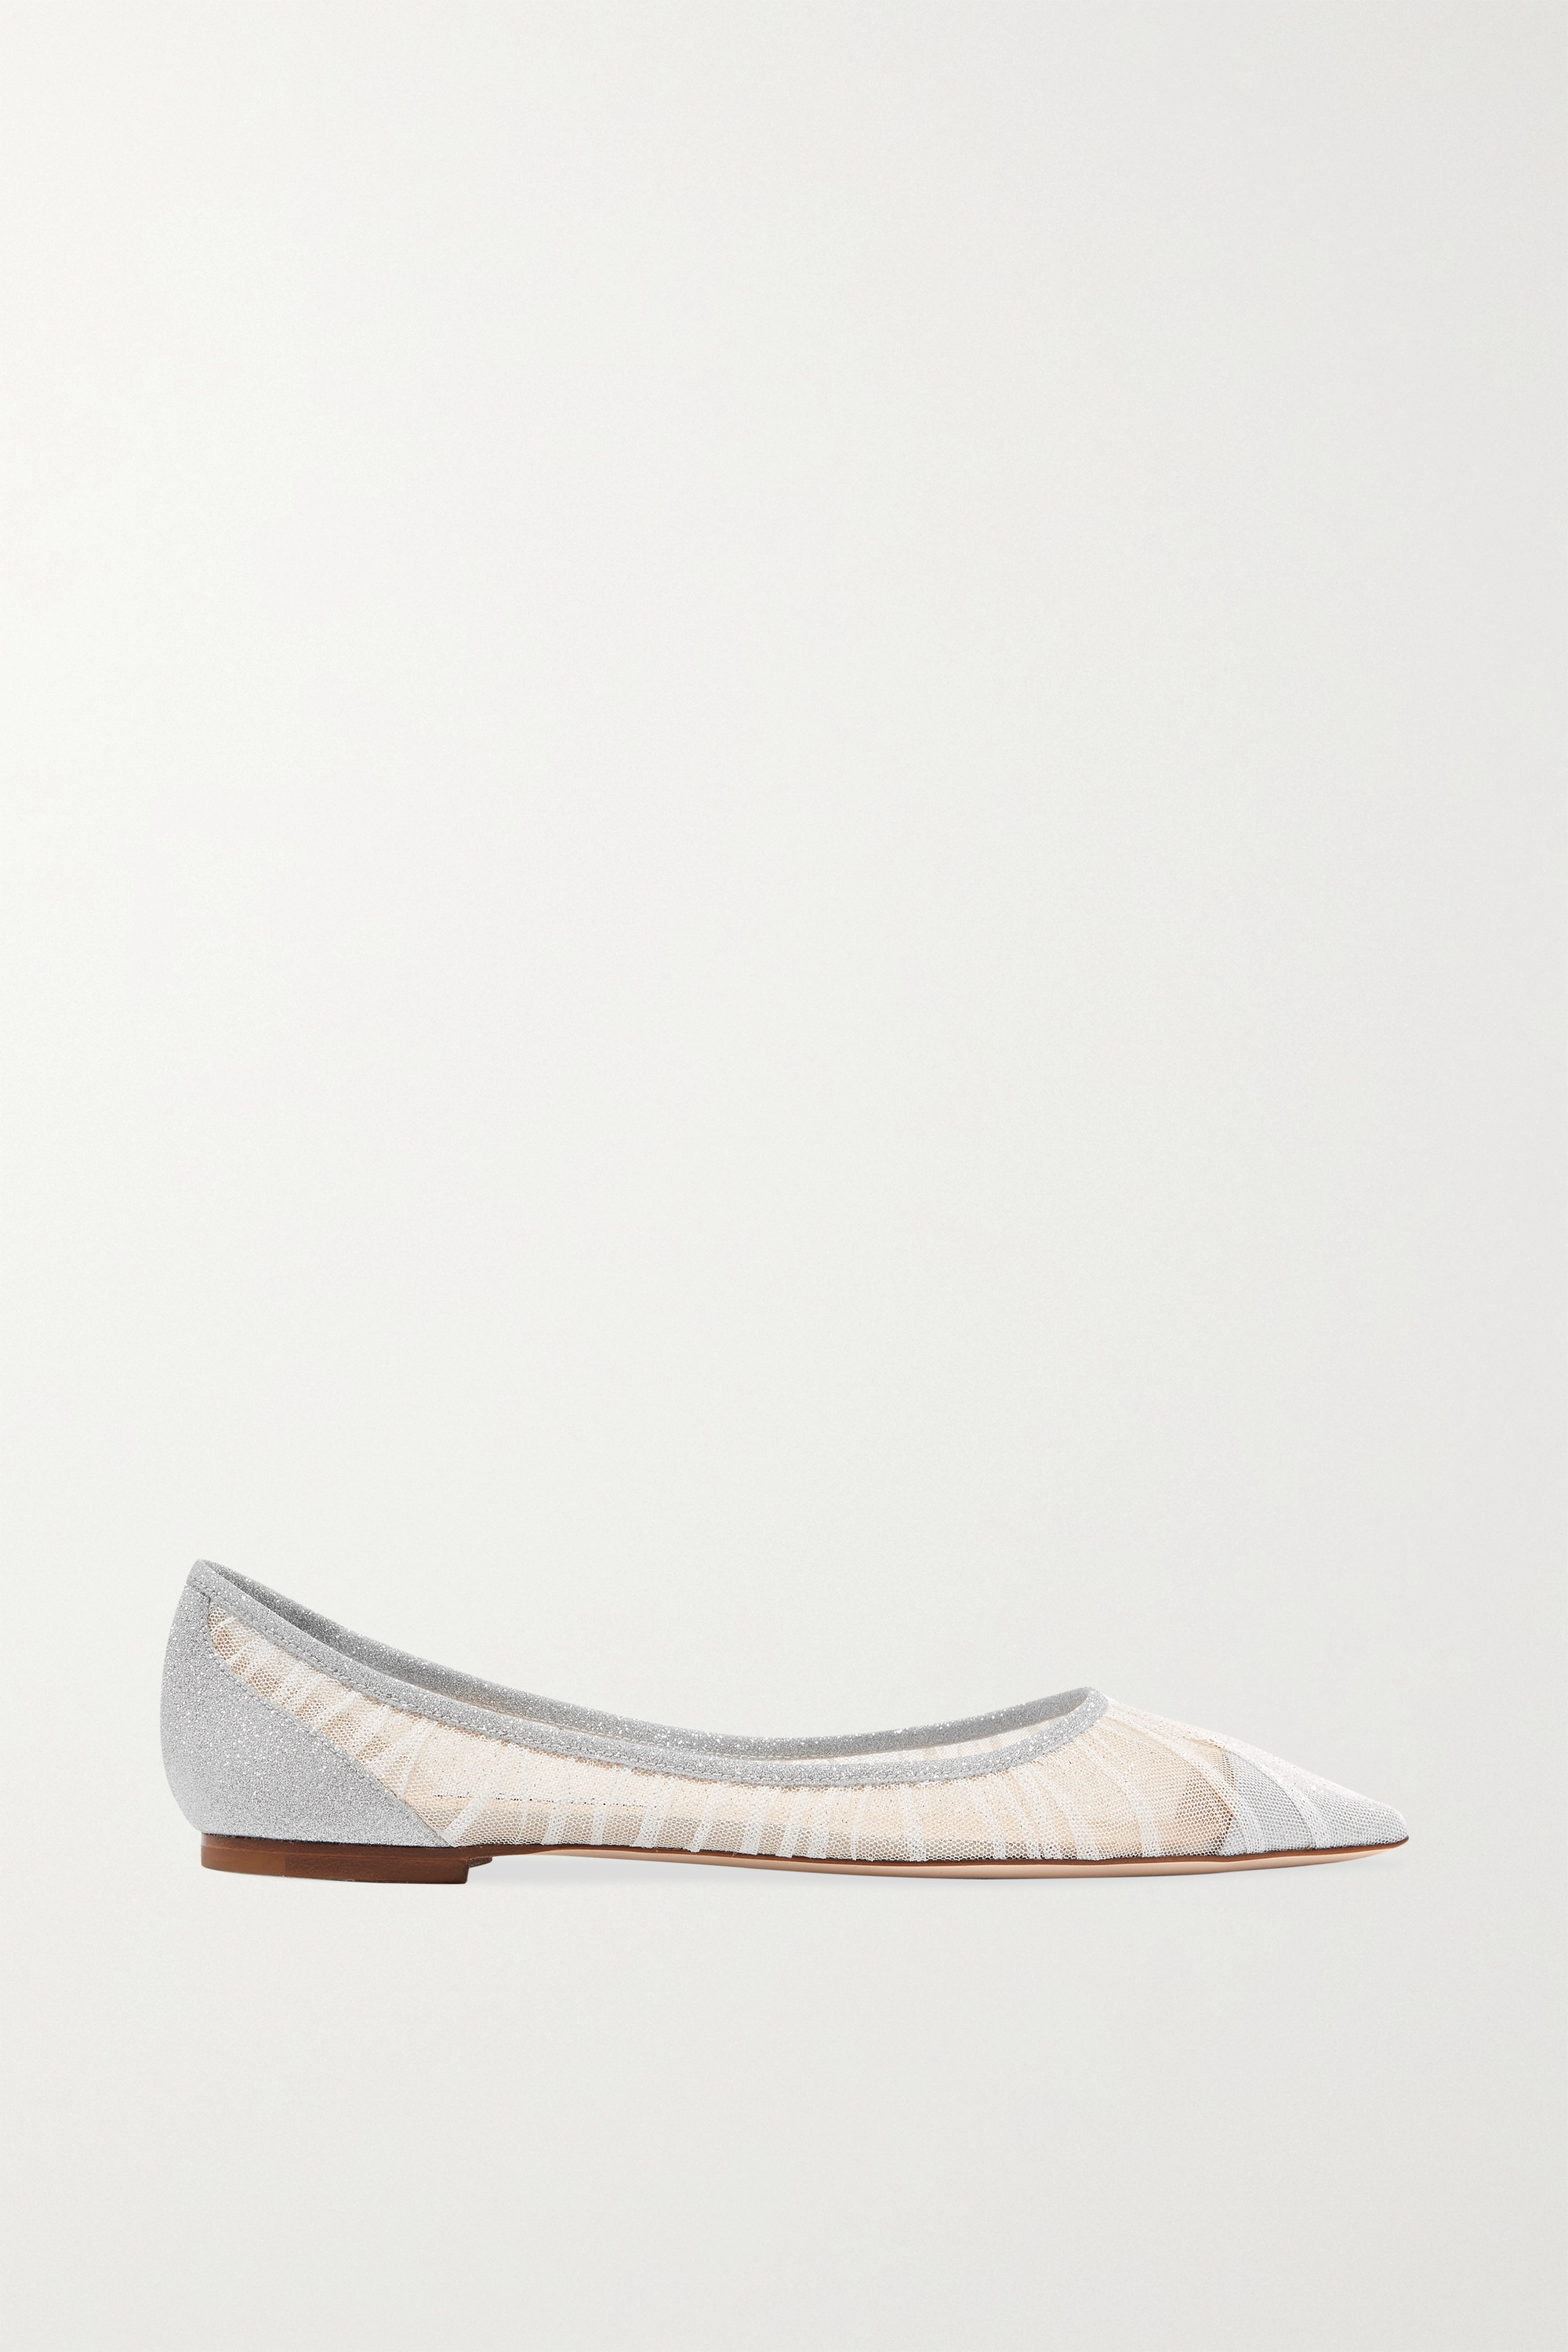 Jimmy Choo Love glittered tulle and canvas point-toe flats